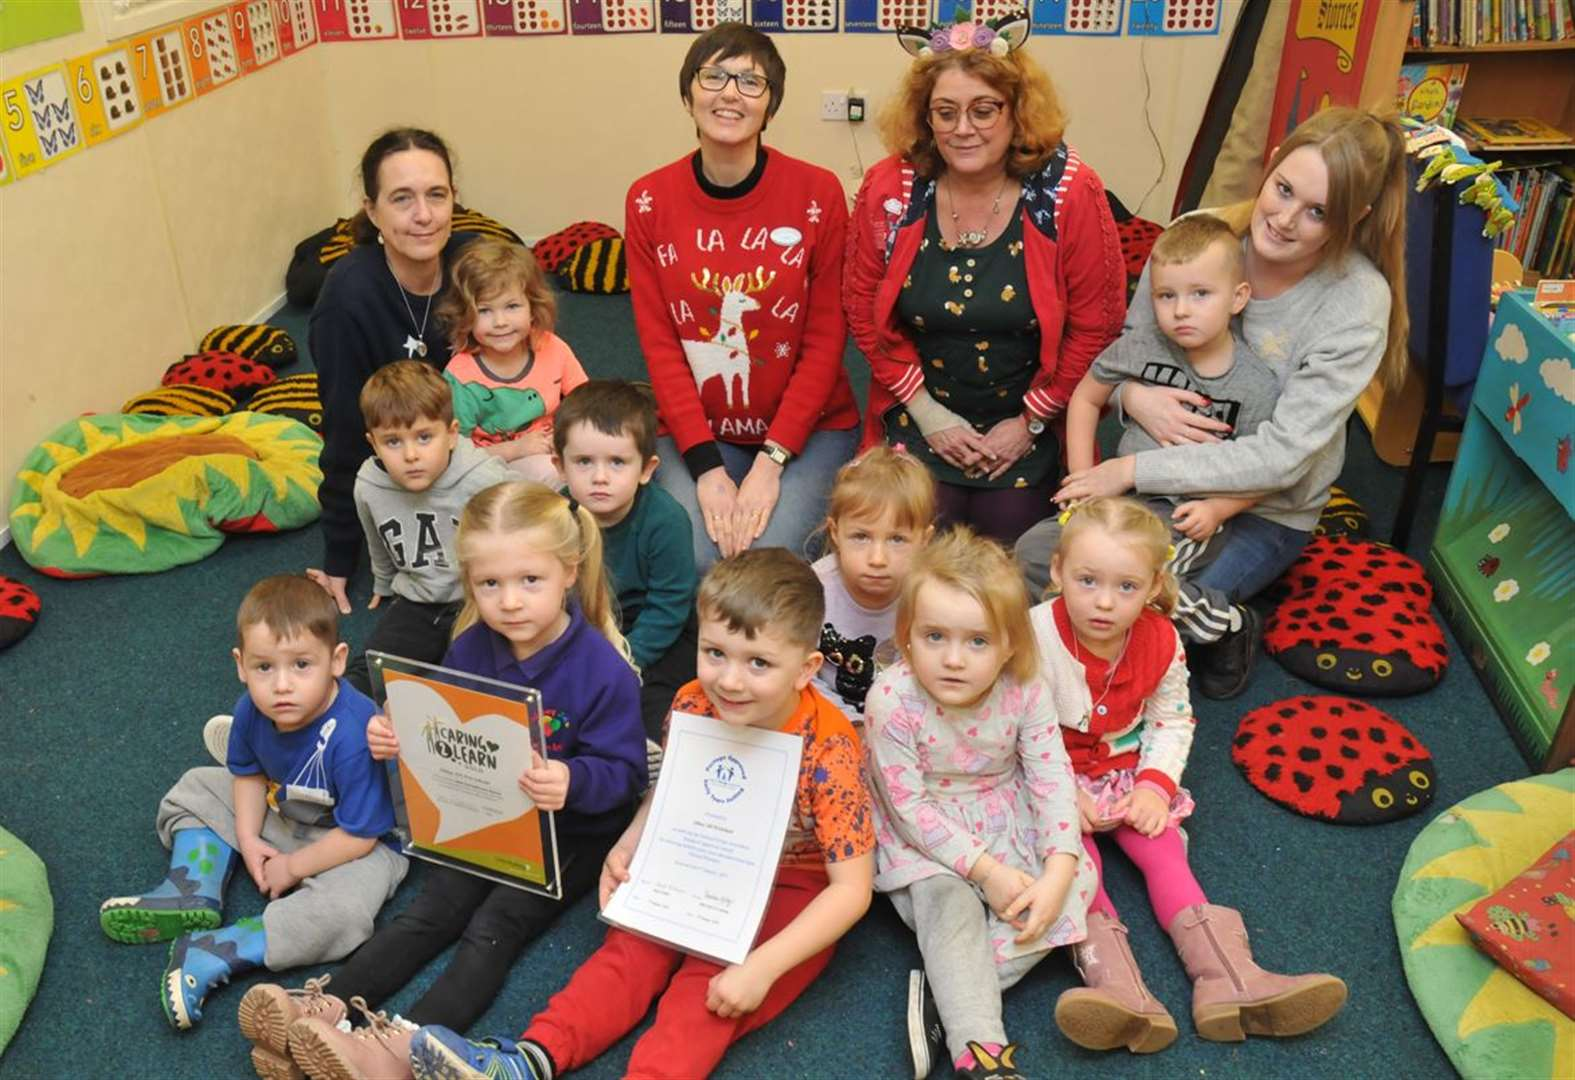 Town pre-school gets 'stamp of approval' for caring